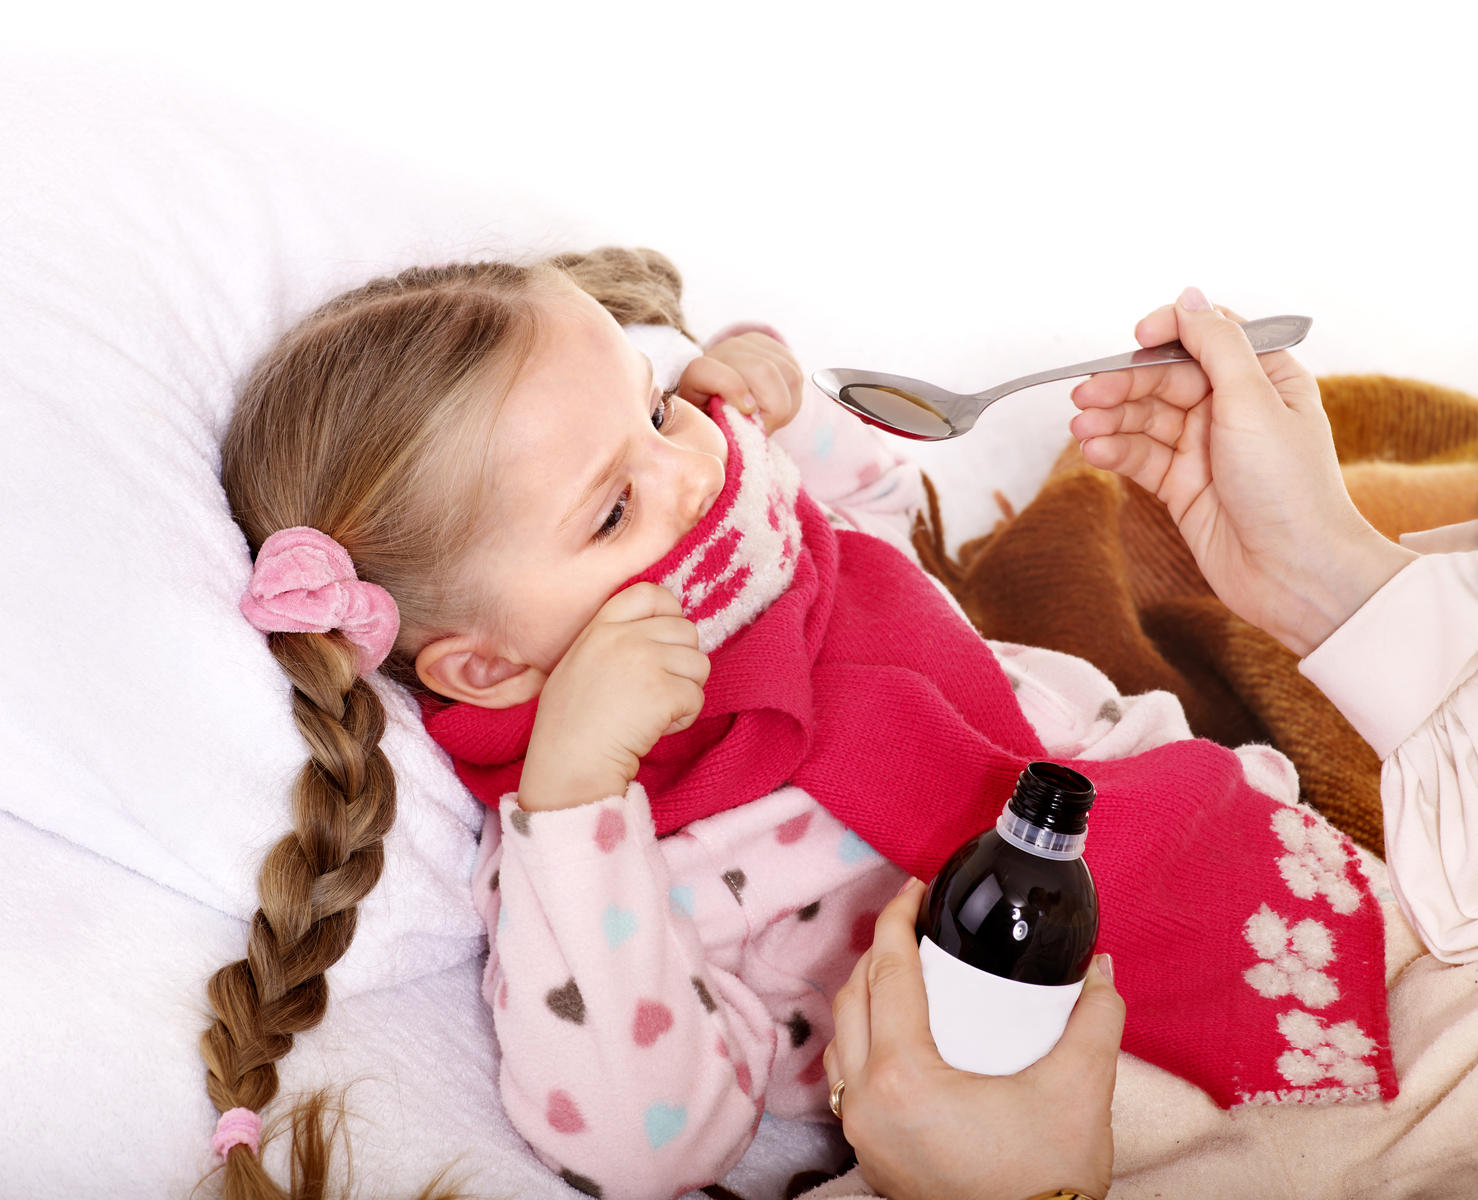 Health Update: How to Soothe Kids' Colds Without Meds